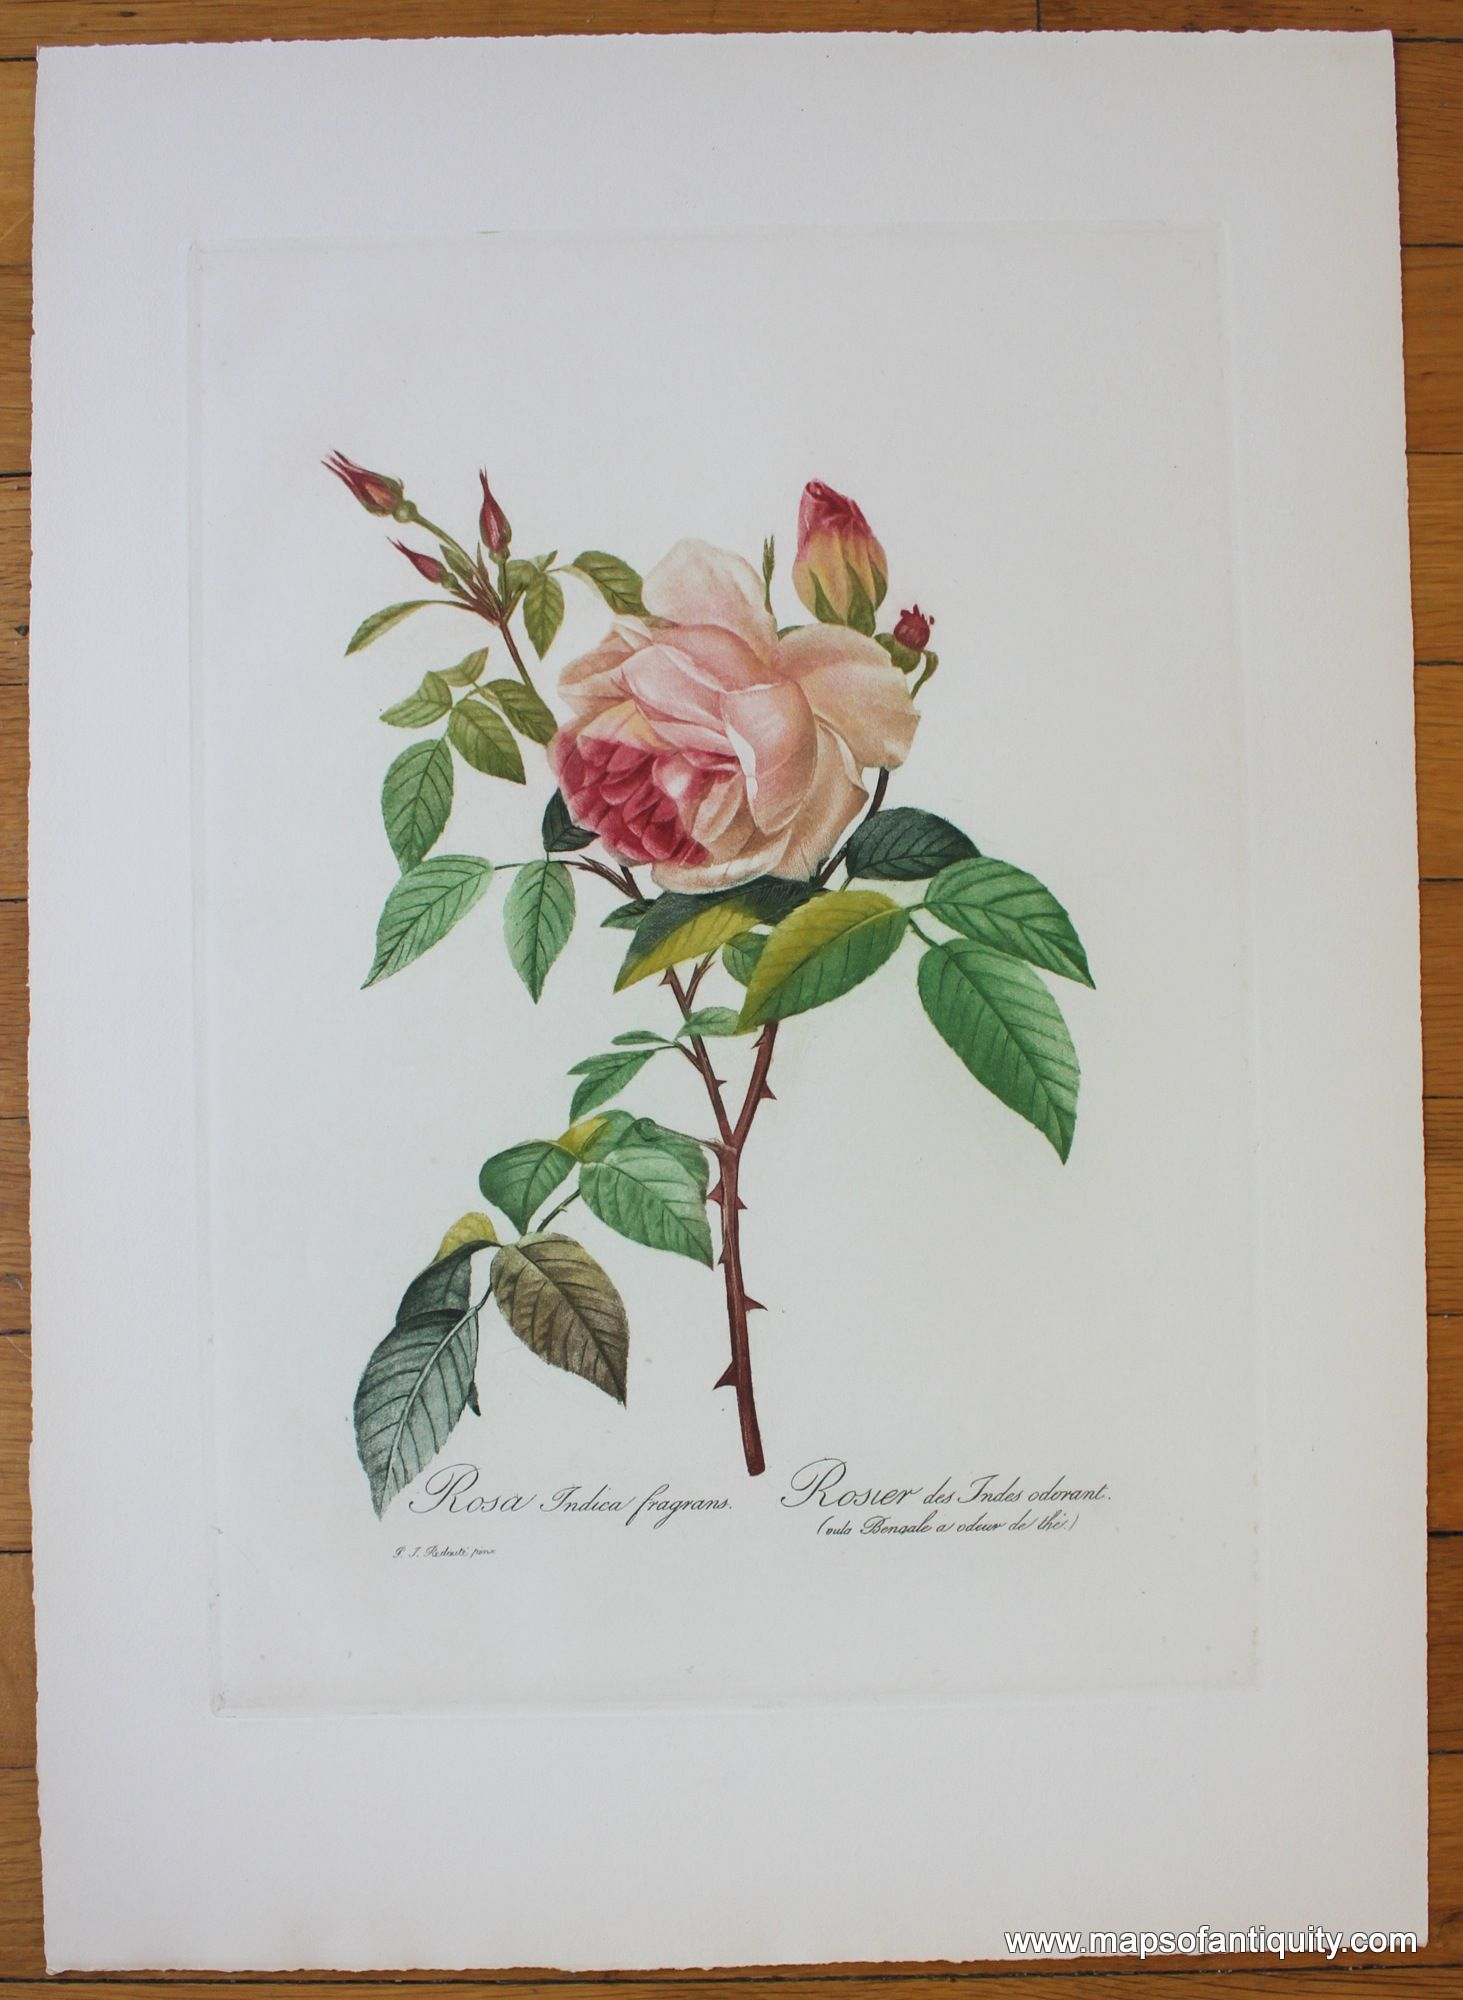 Rosa Indica Fragrans Rosier Des Indes Odorant Antique Maps And Charts Original Vintage Rare Historical Prints Reproductions Of